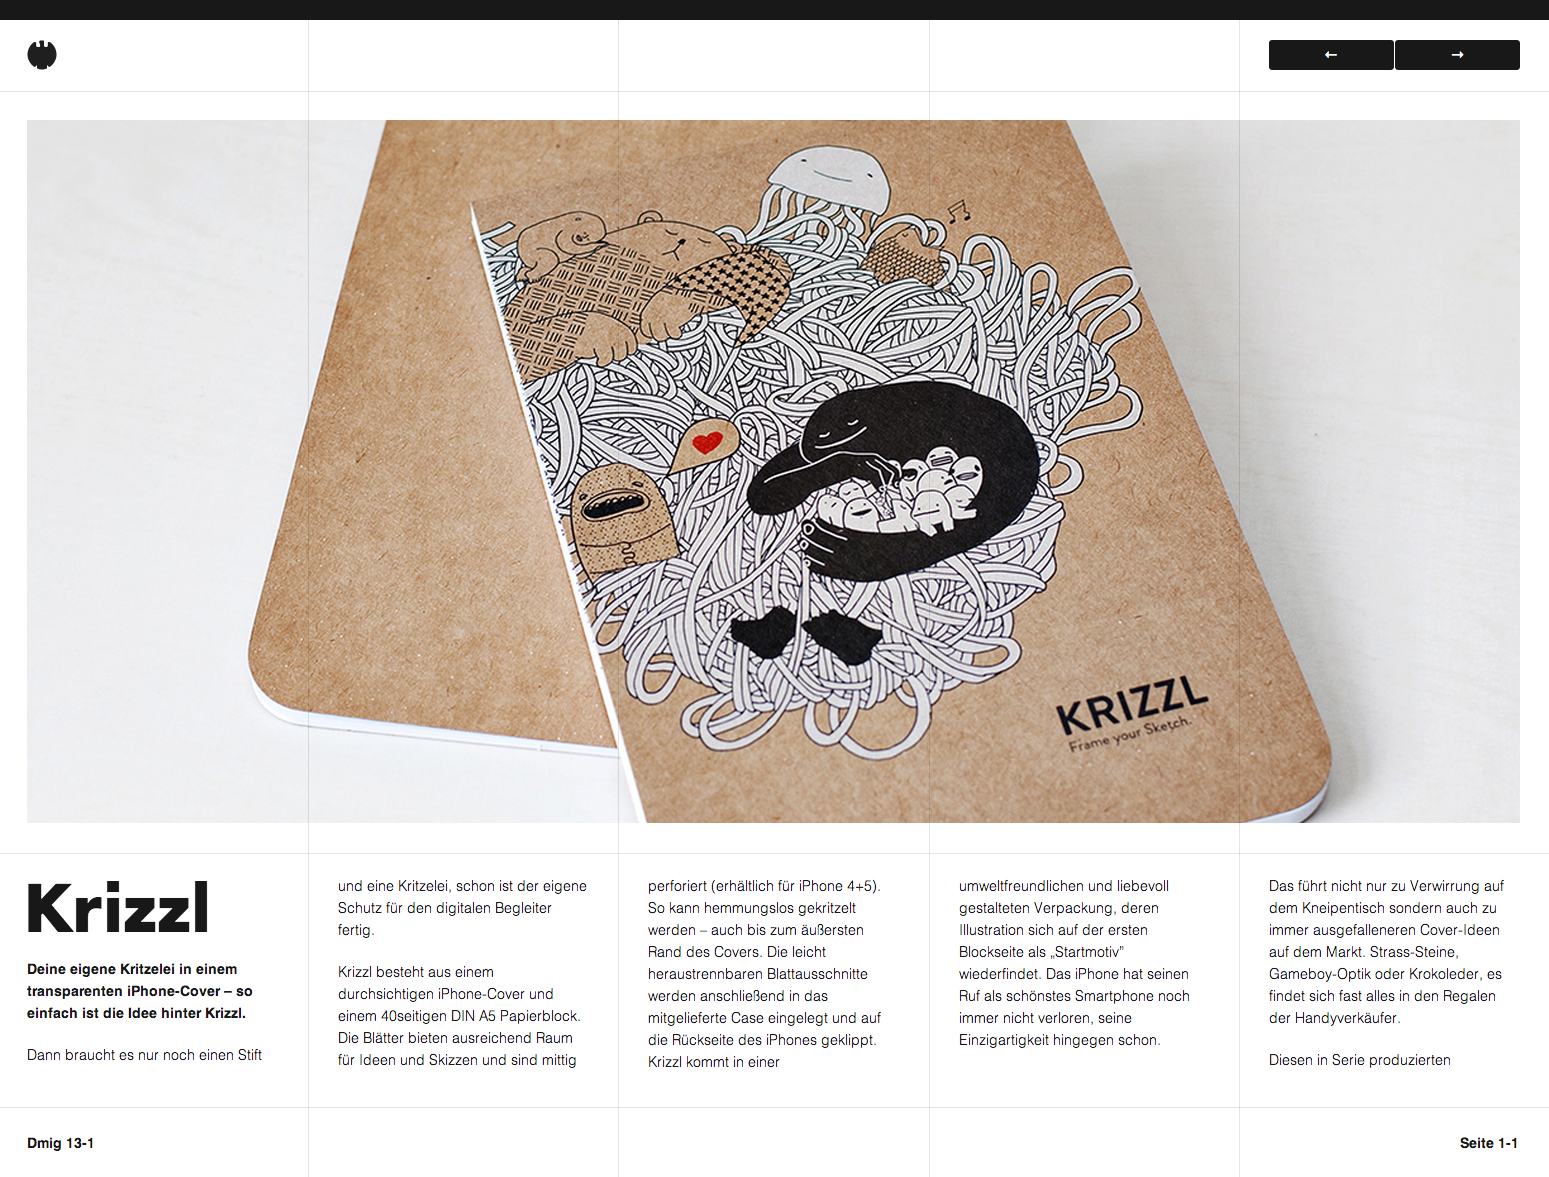 Dmig. Responsive editorial with visible grid